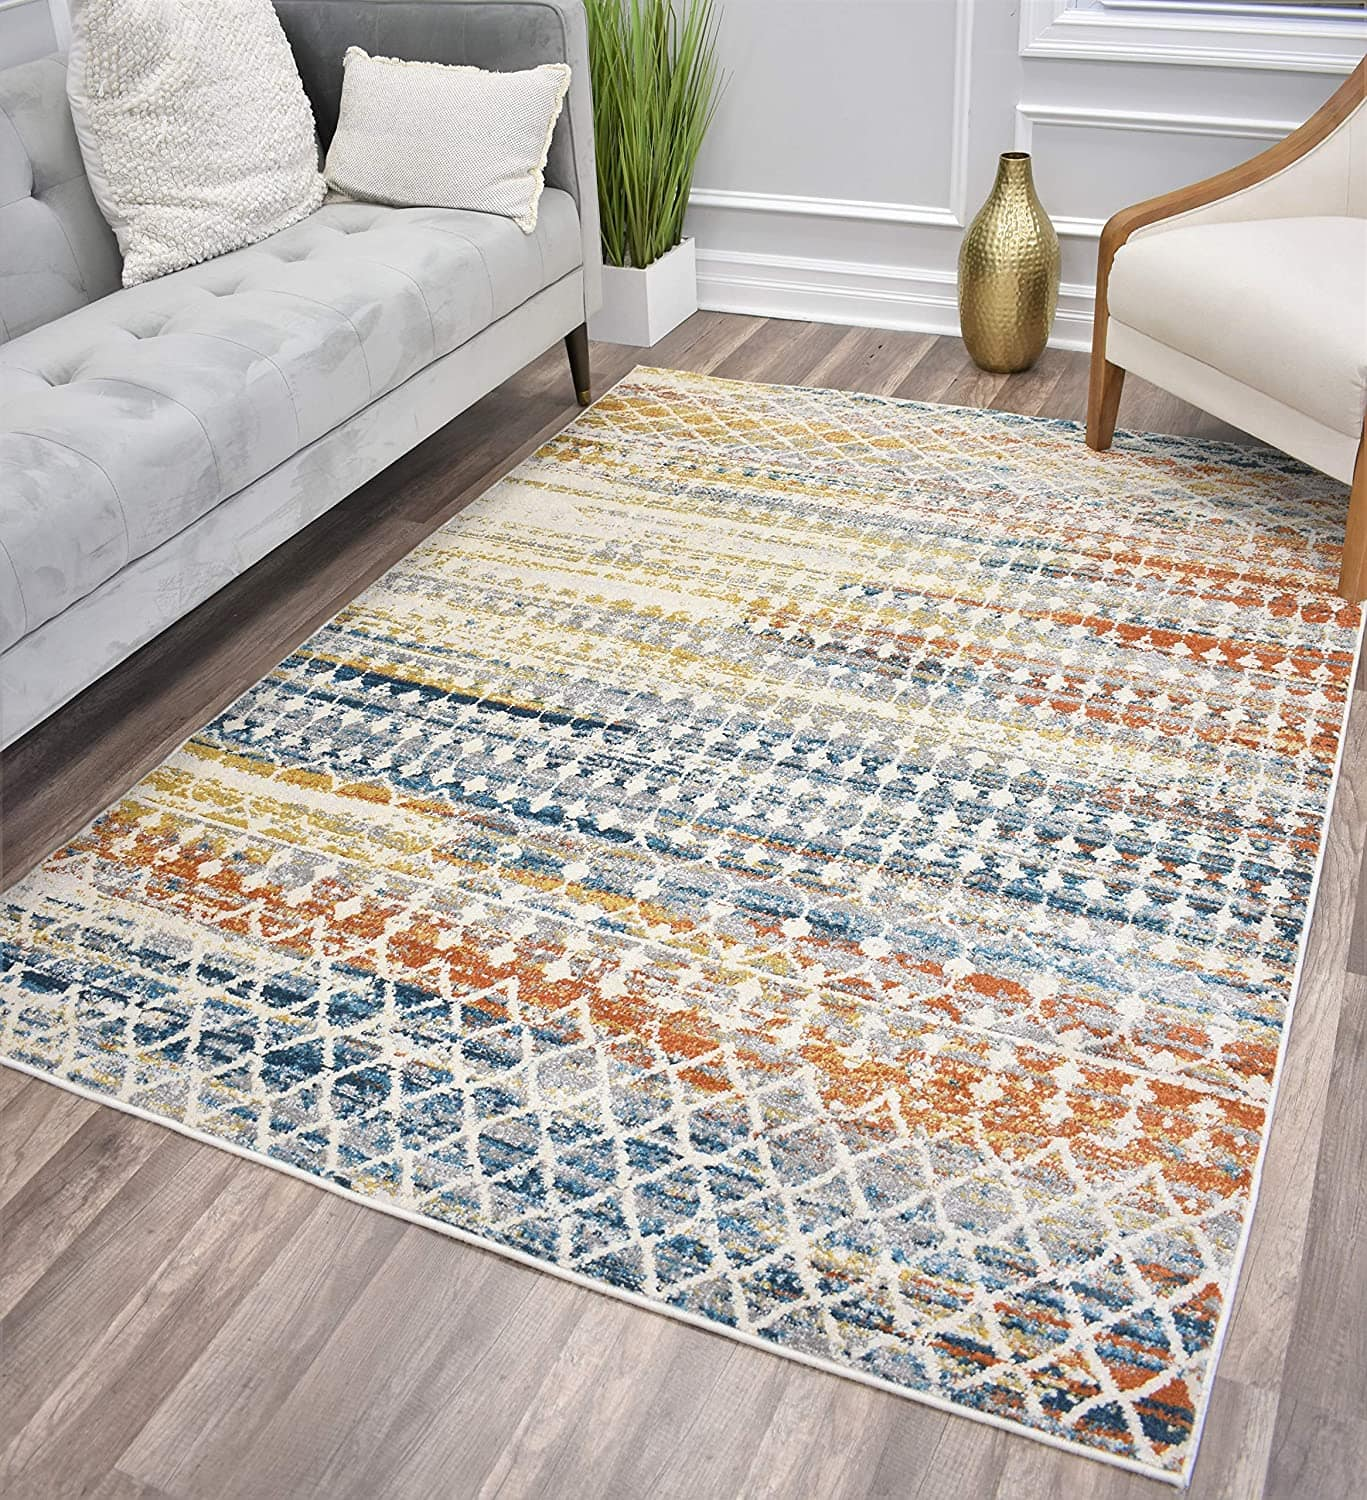 """5'1"""" x 7' CosmoLiving Manhattan Collection Area Rug (Tribal Harvest) $33 + Free Shipping"""